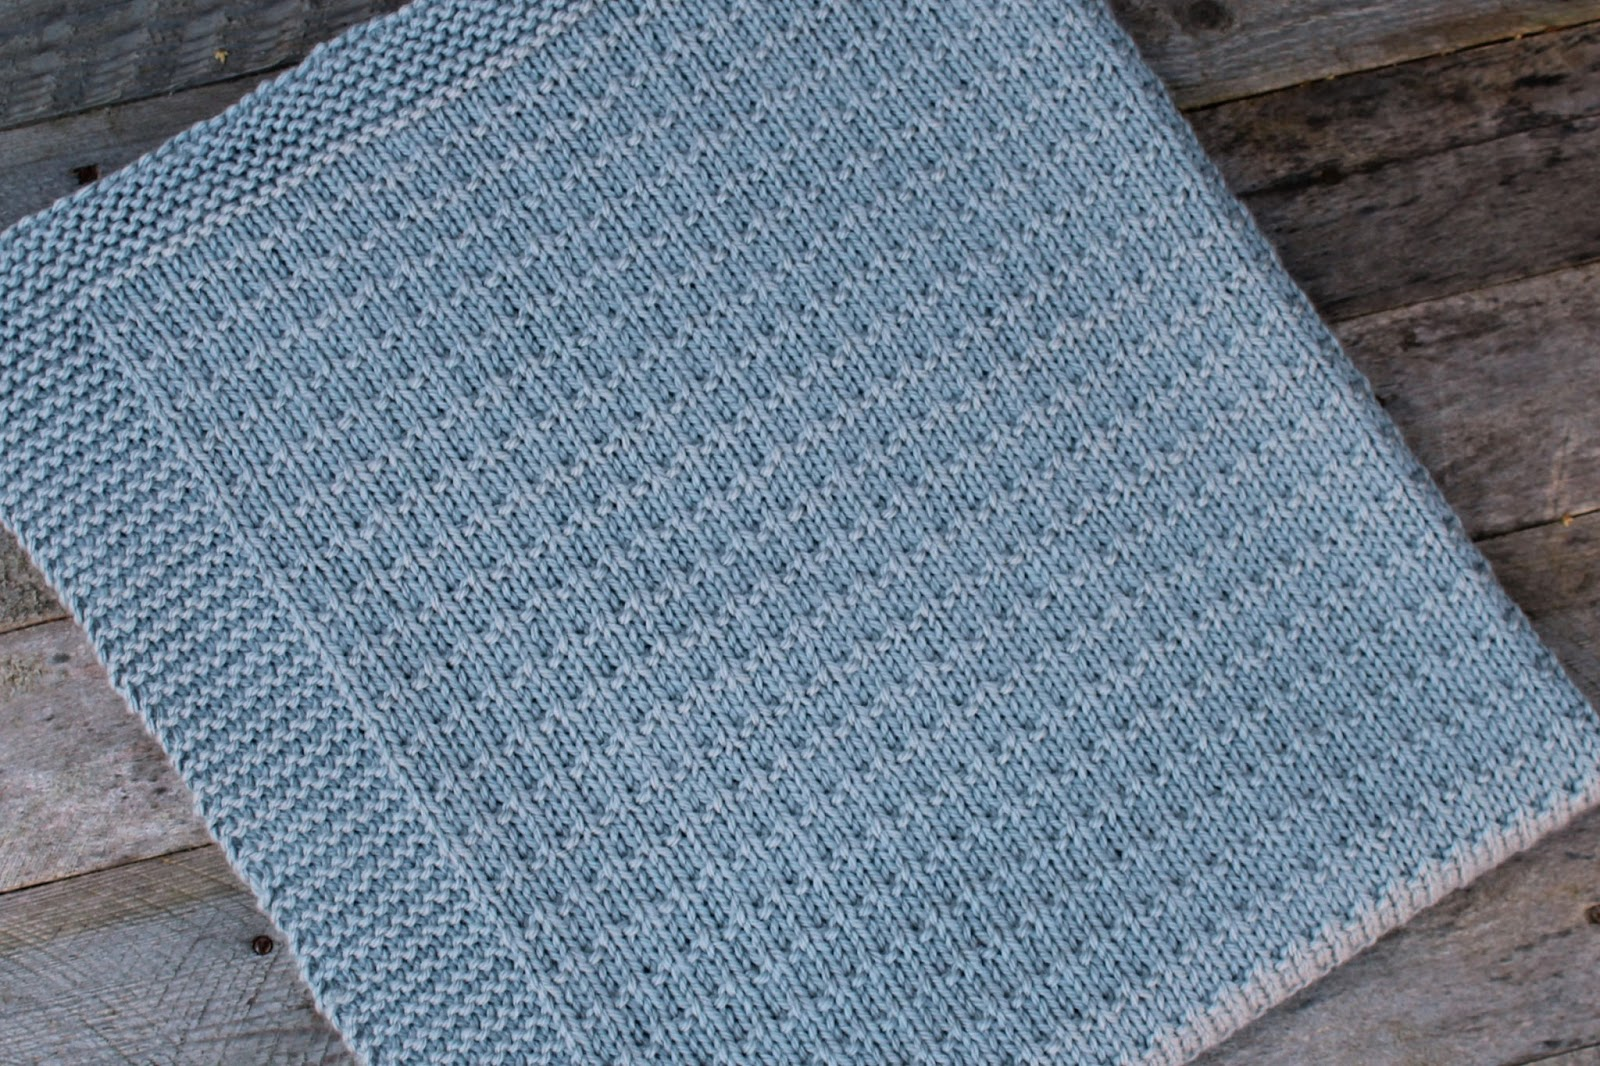 Avaya knit baby blanket worsted pattern free knitting pattern repeat rows 1 4 of the main pattern until all of your blanket including the border measures 285 inches approx finishing on a row 4 bankloansurffo Gallery